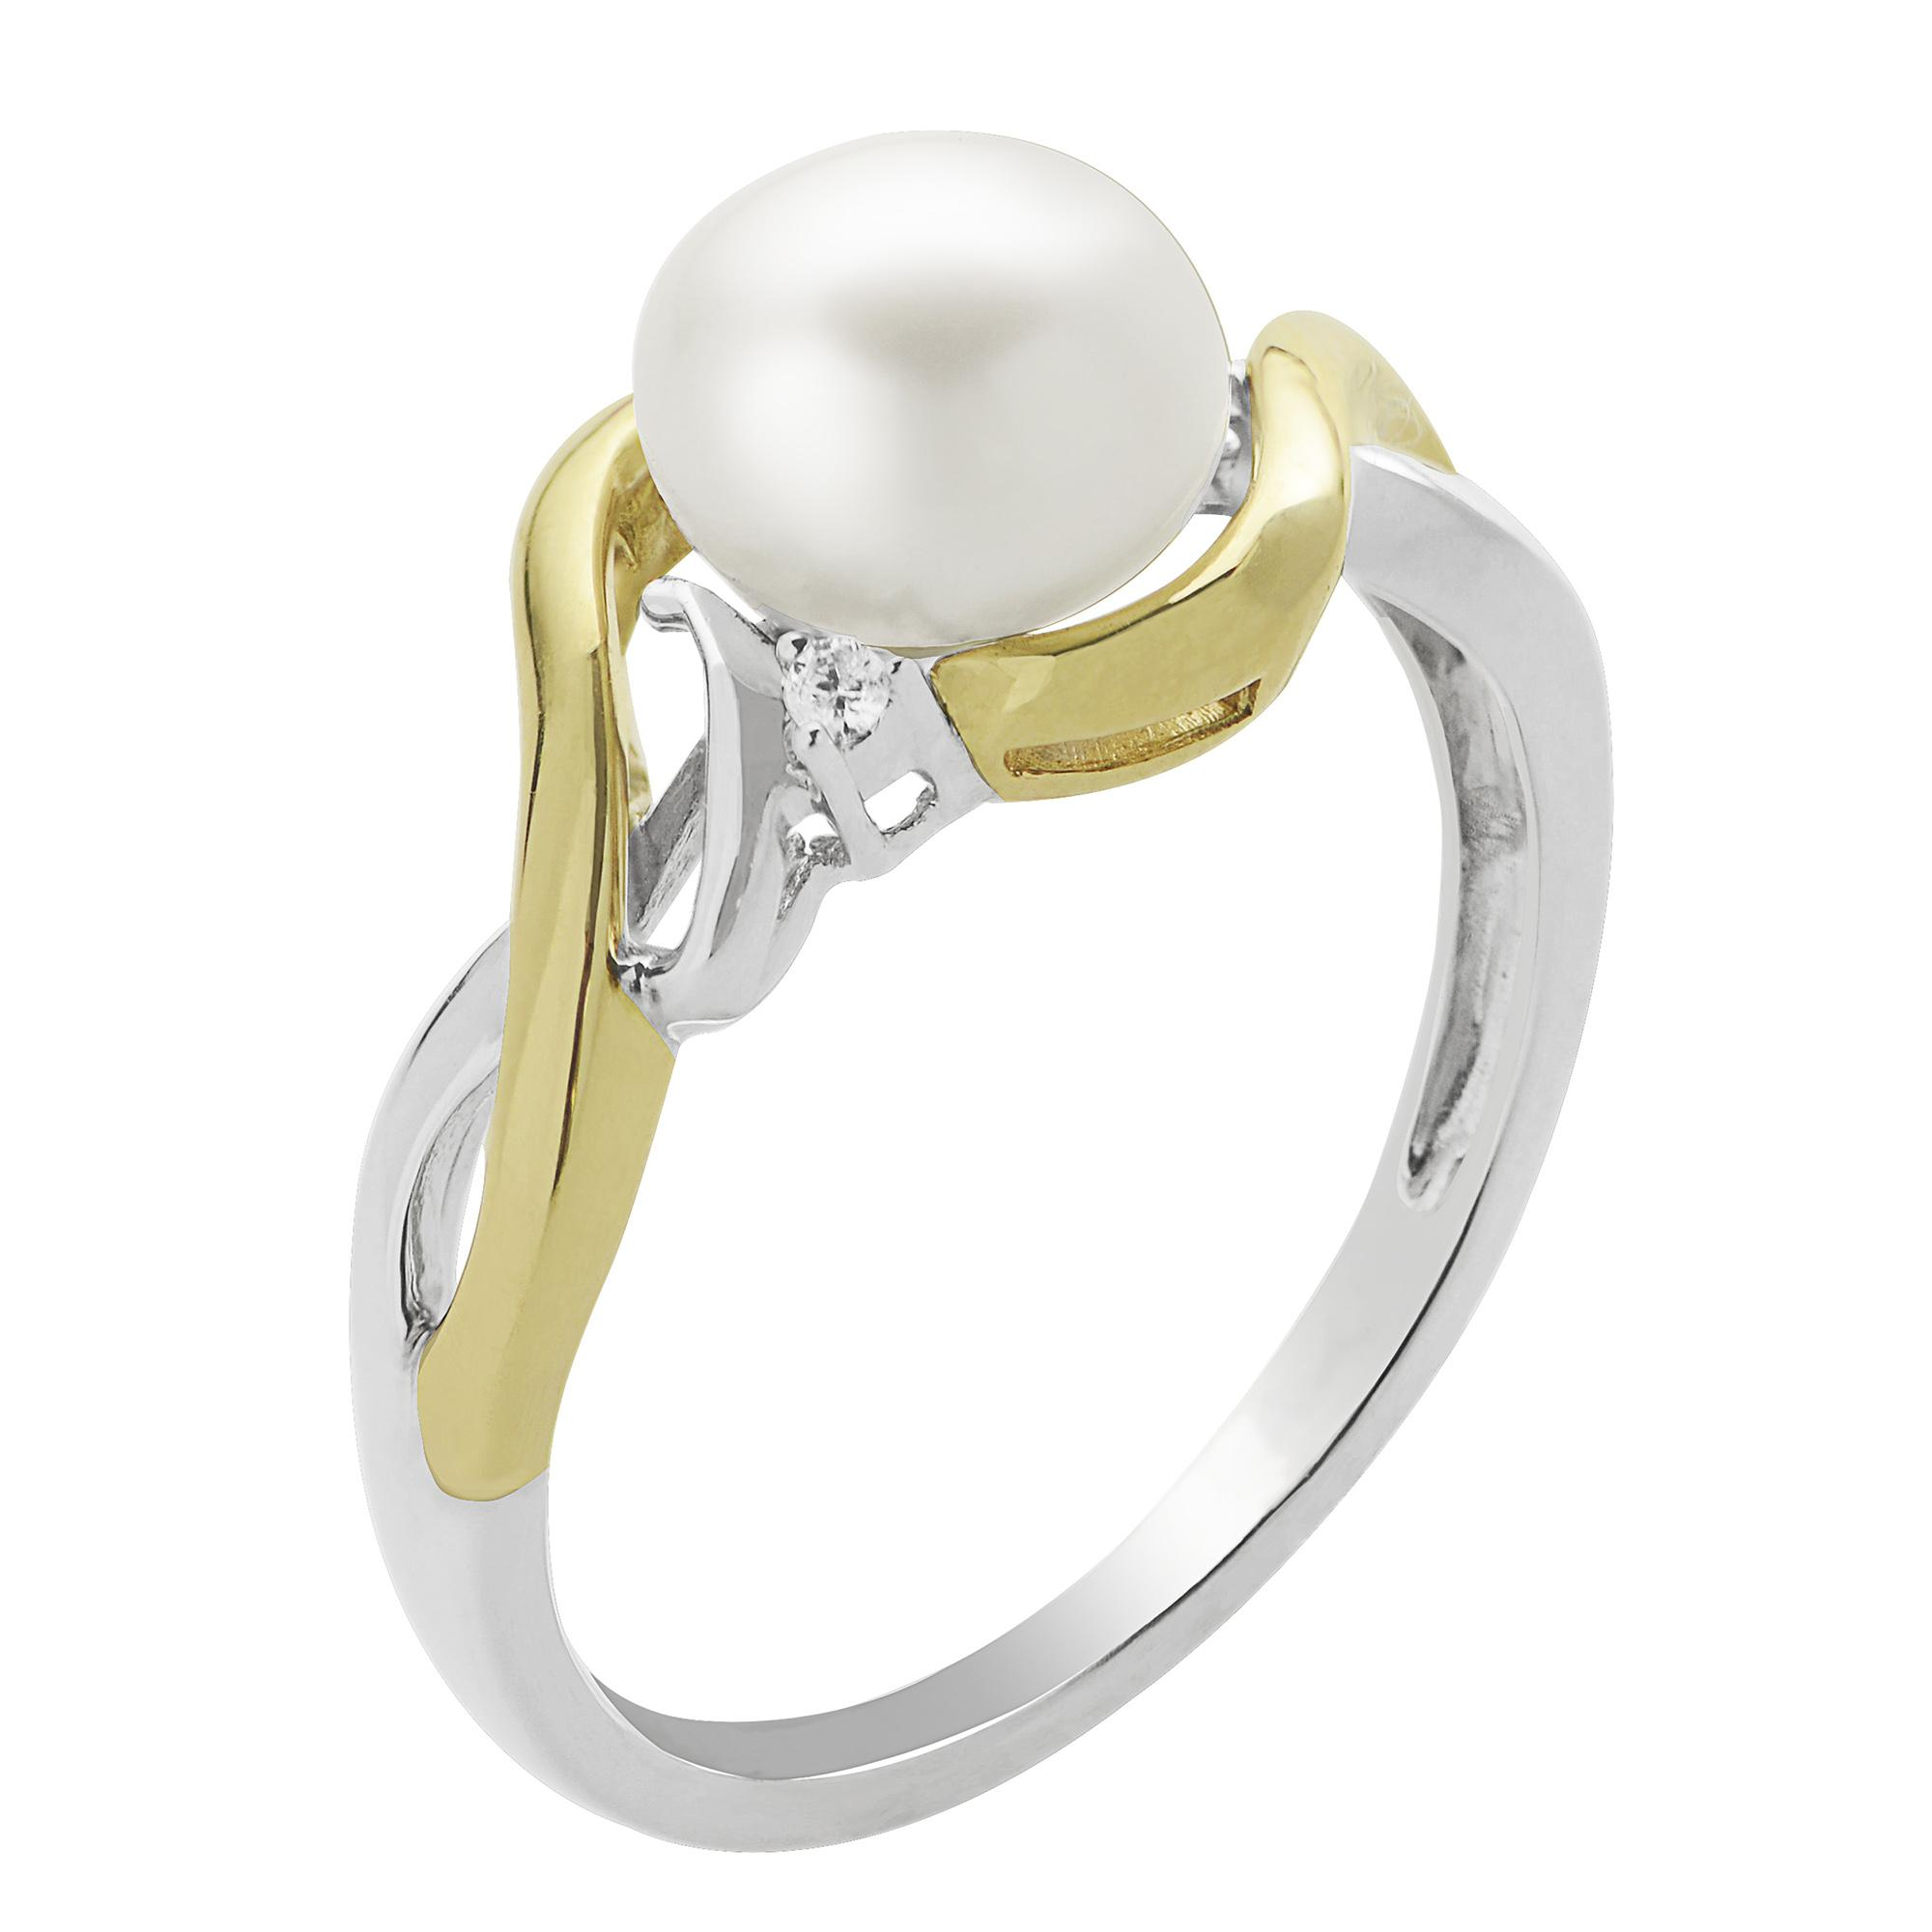 69b77596e Home · All Jewelry · Rings · Pearl Rings; 14K Yellow Gold Freshwater Pearl  Ring